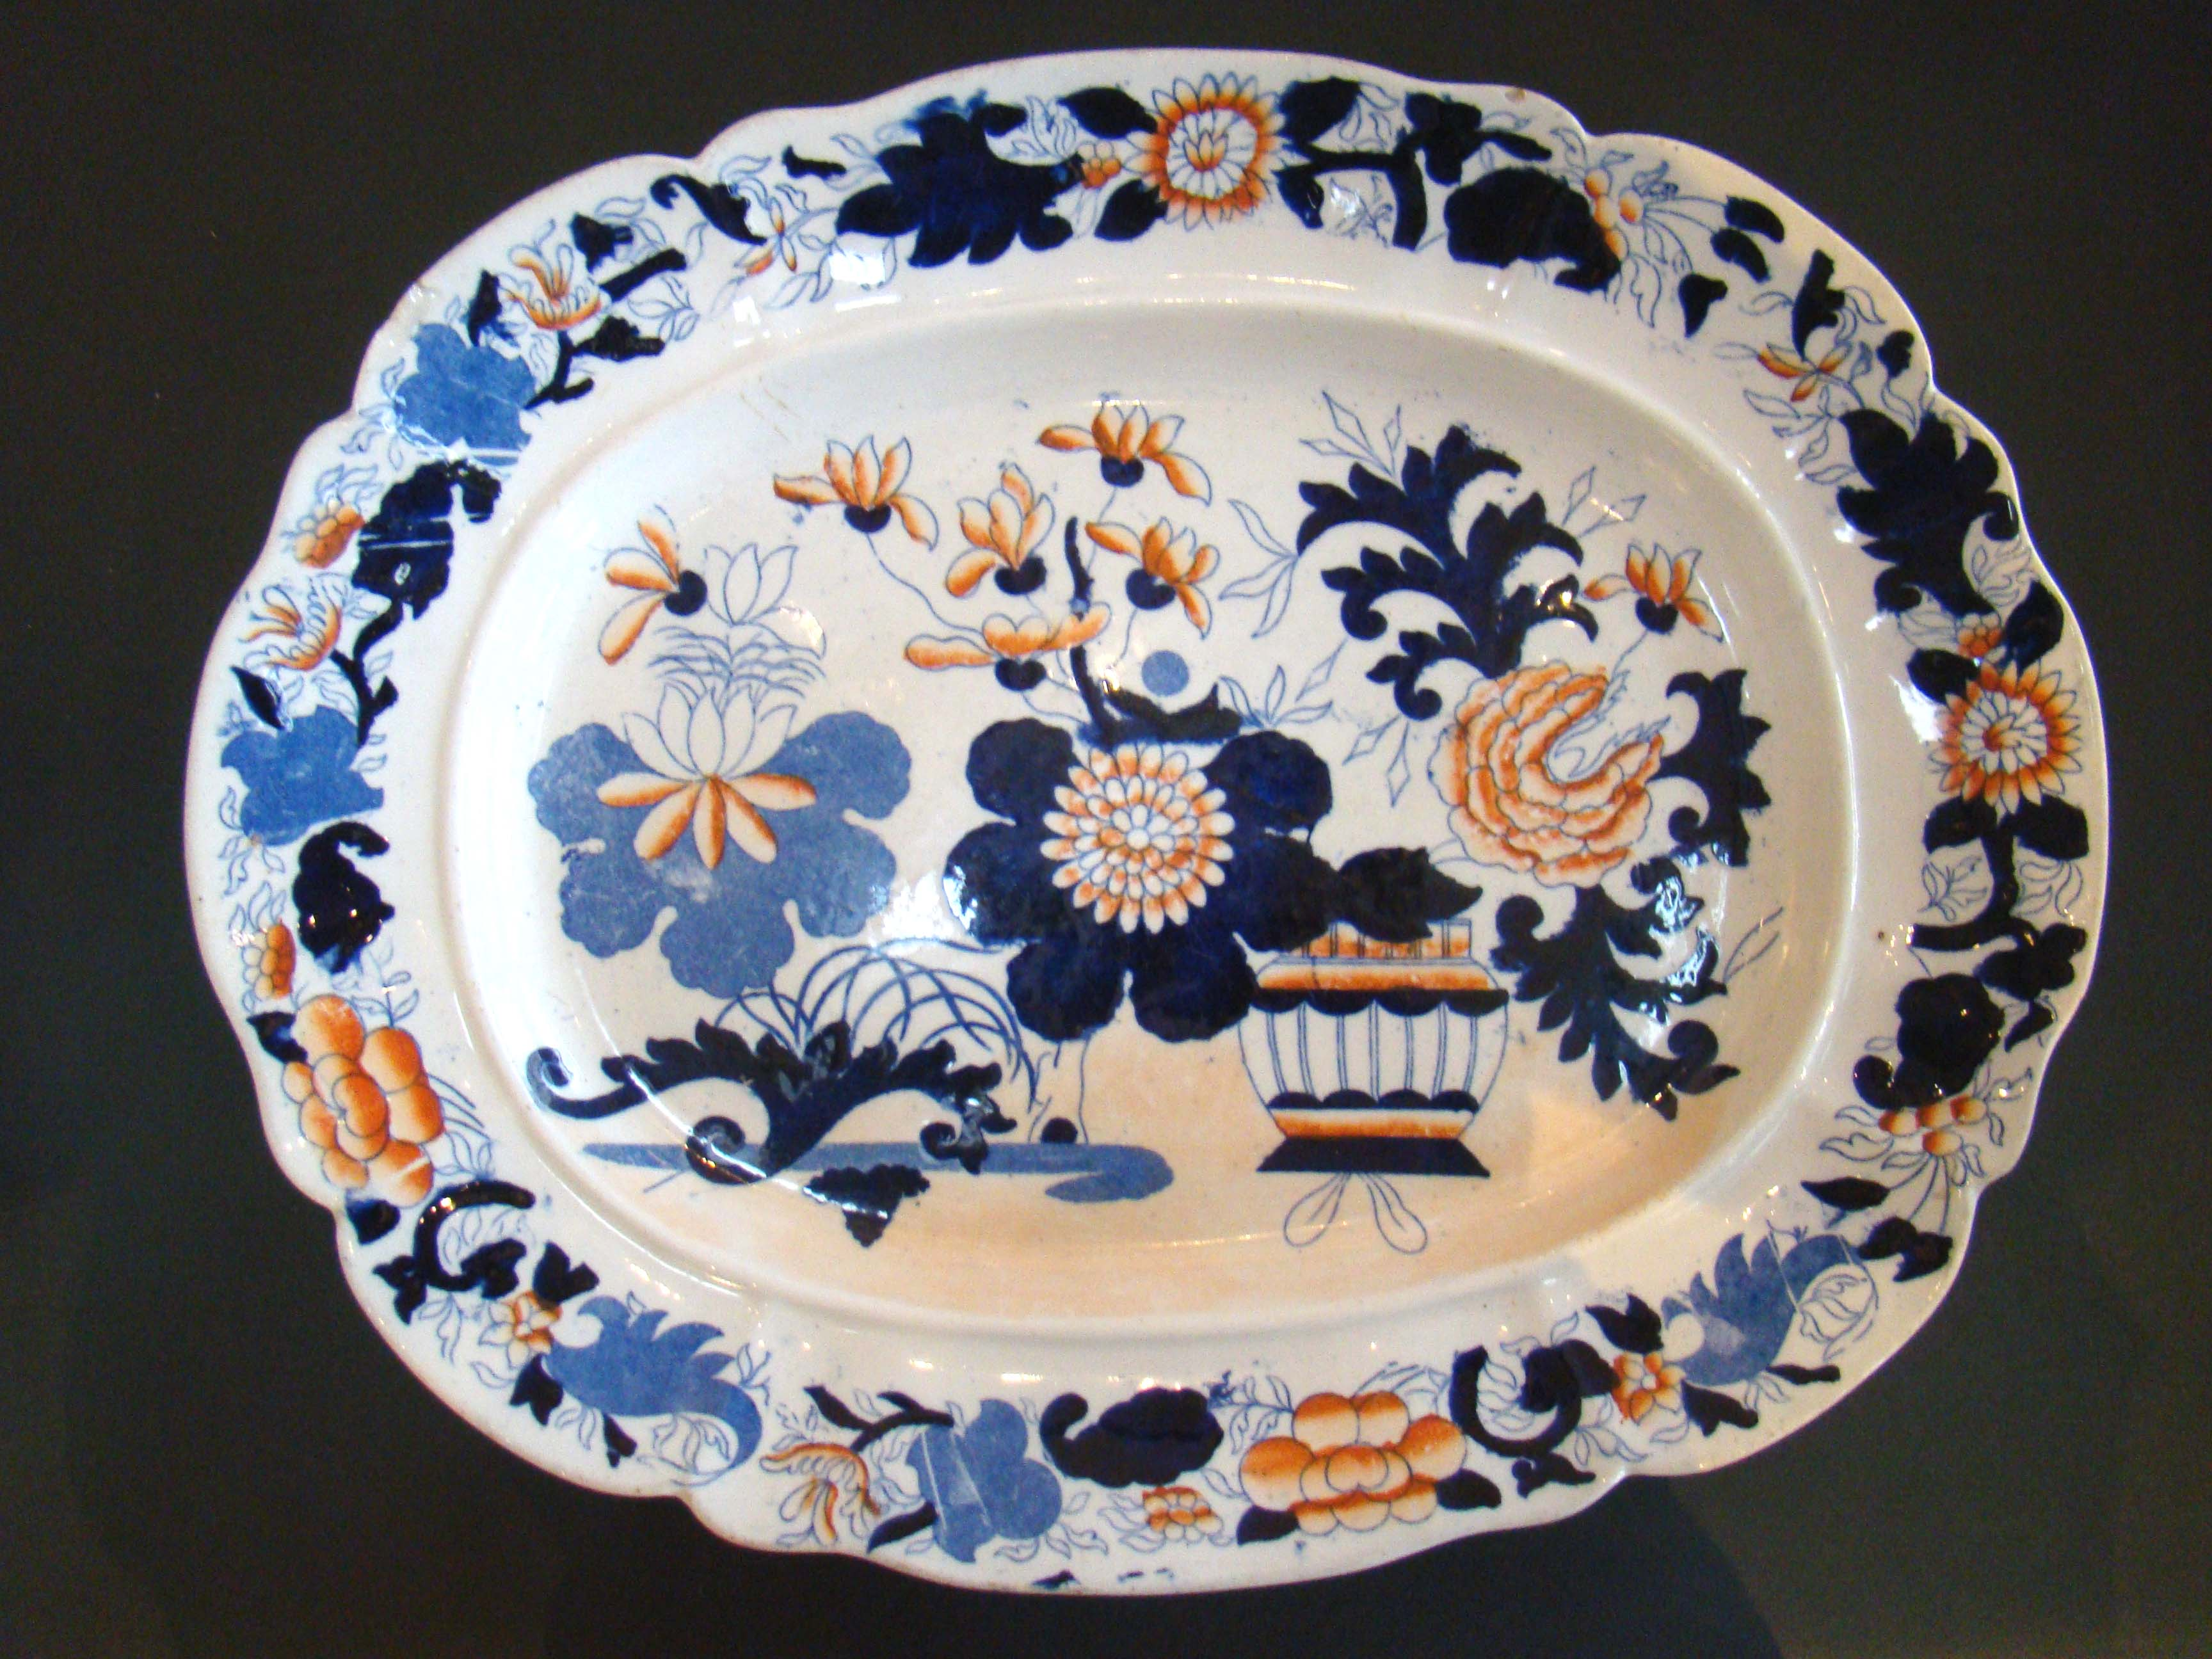 click to view detailed description of An early 19th century Mason's Stoneware serving Platter in the Japan Basket pattern circa 1820